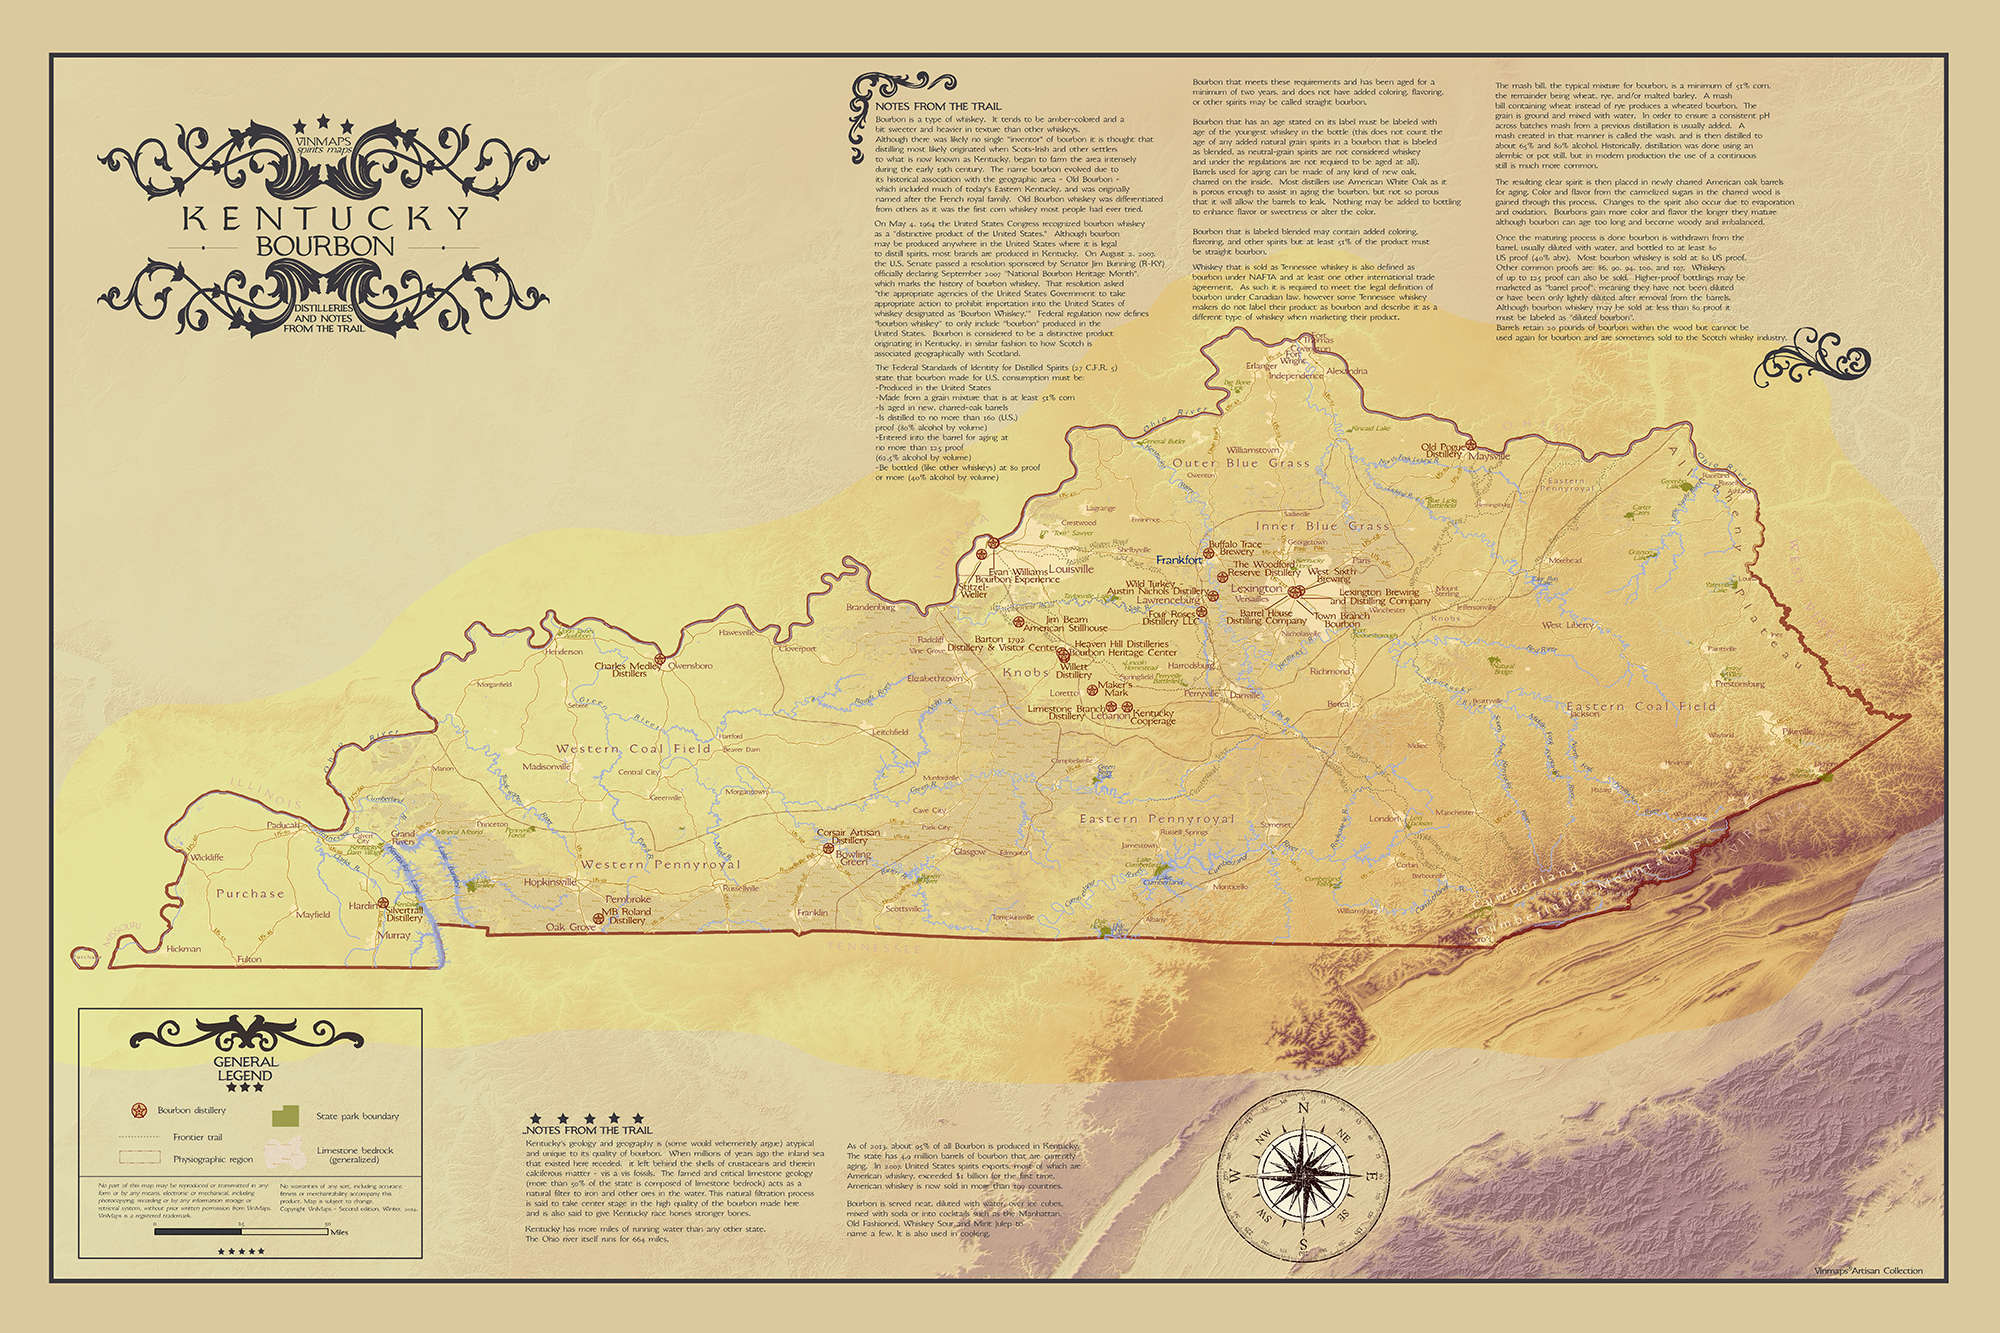 Kentucky Bourbon Distilleries With Notes From the Trail Map